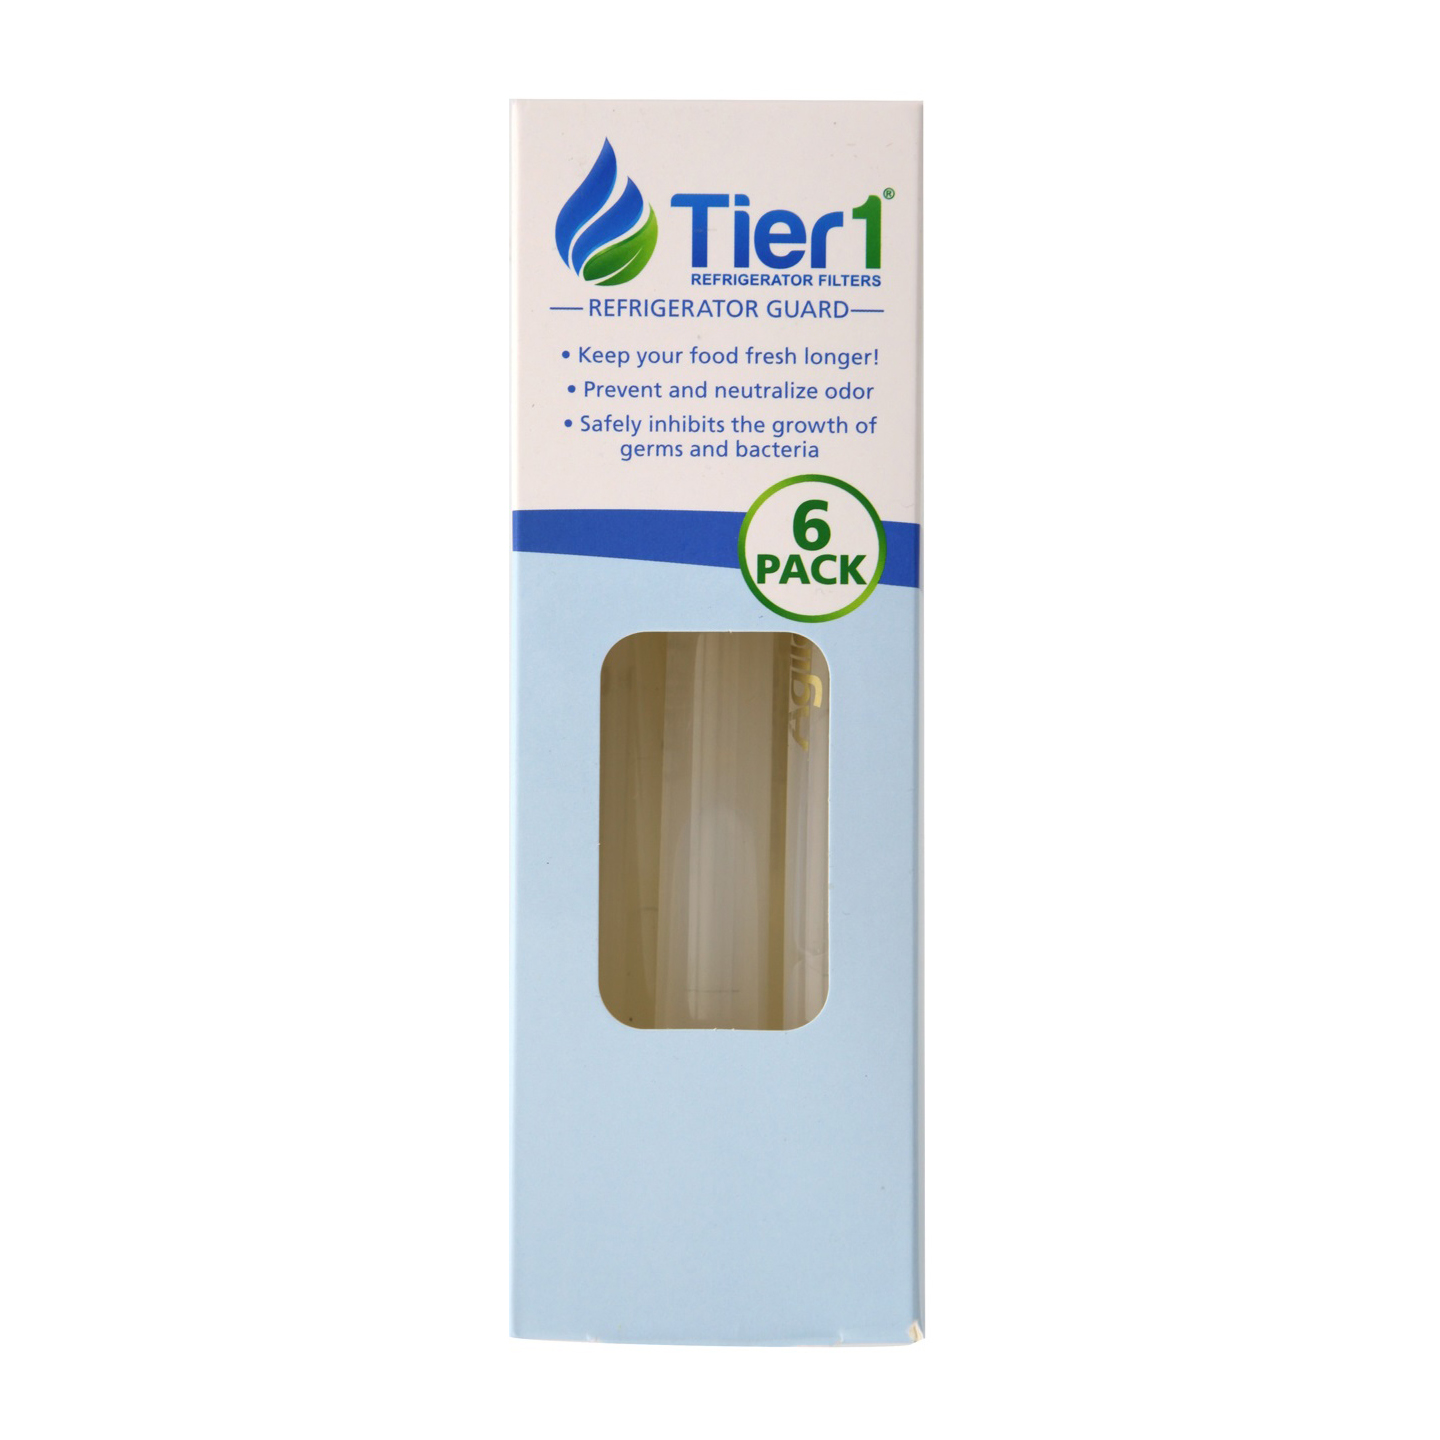 Tier1 Universal Refrigerator Odor Reduction and Bacteria Inhibiting Air Freshener (6 Pack) TIER1-RAF1160-6PK